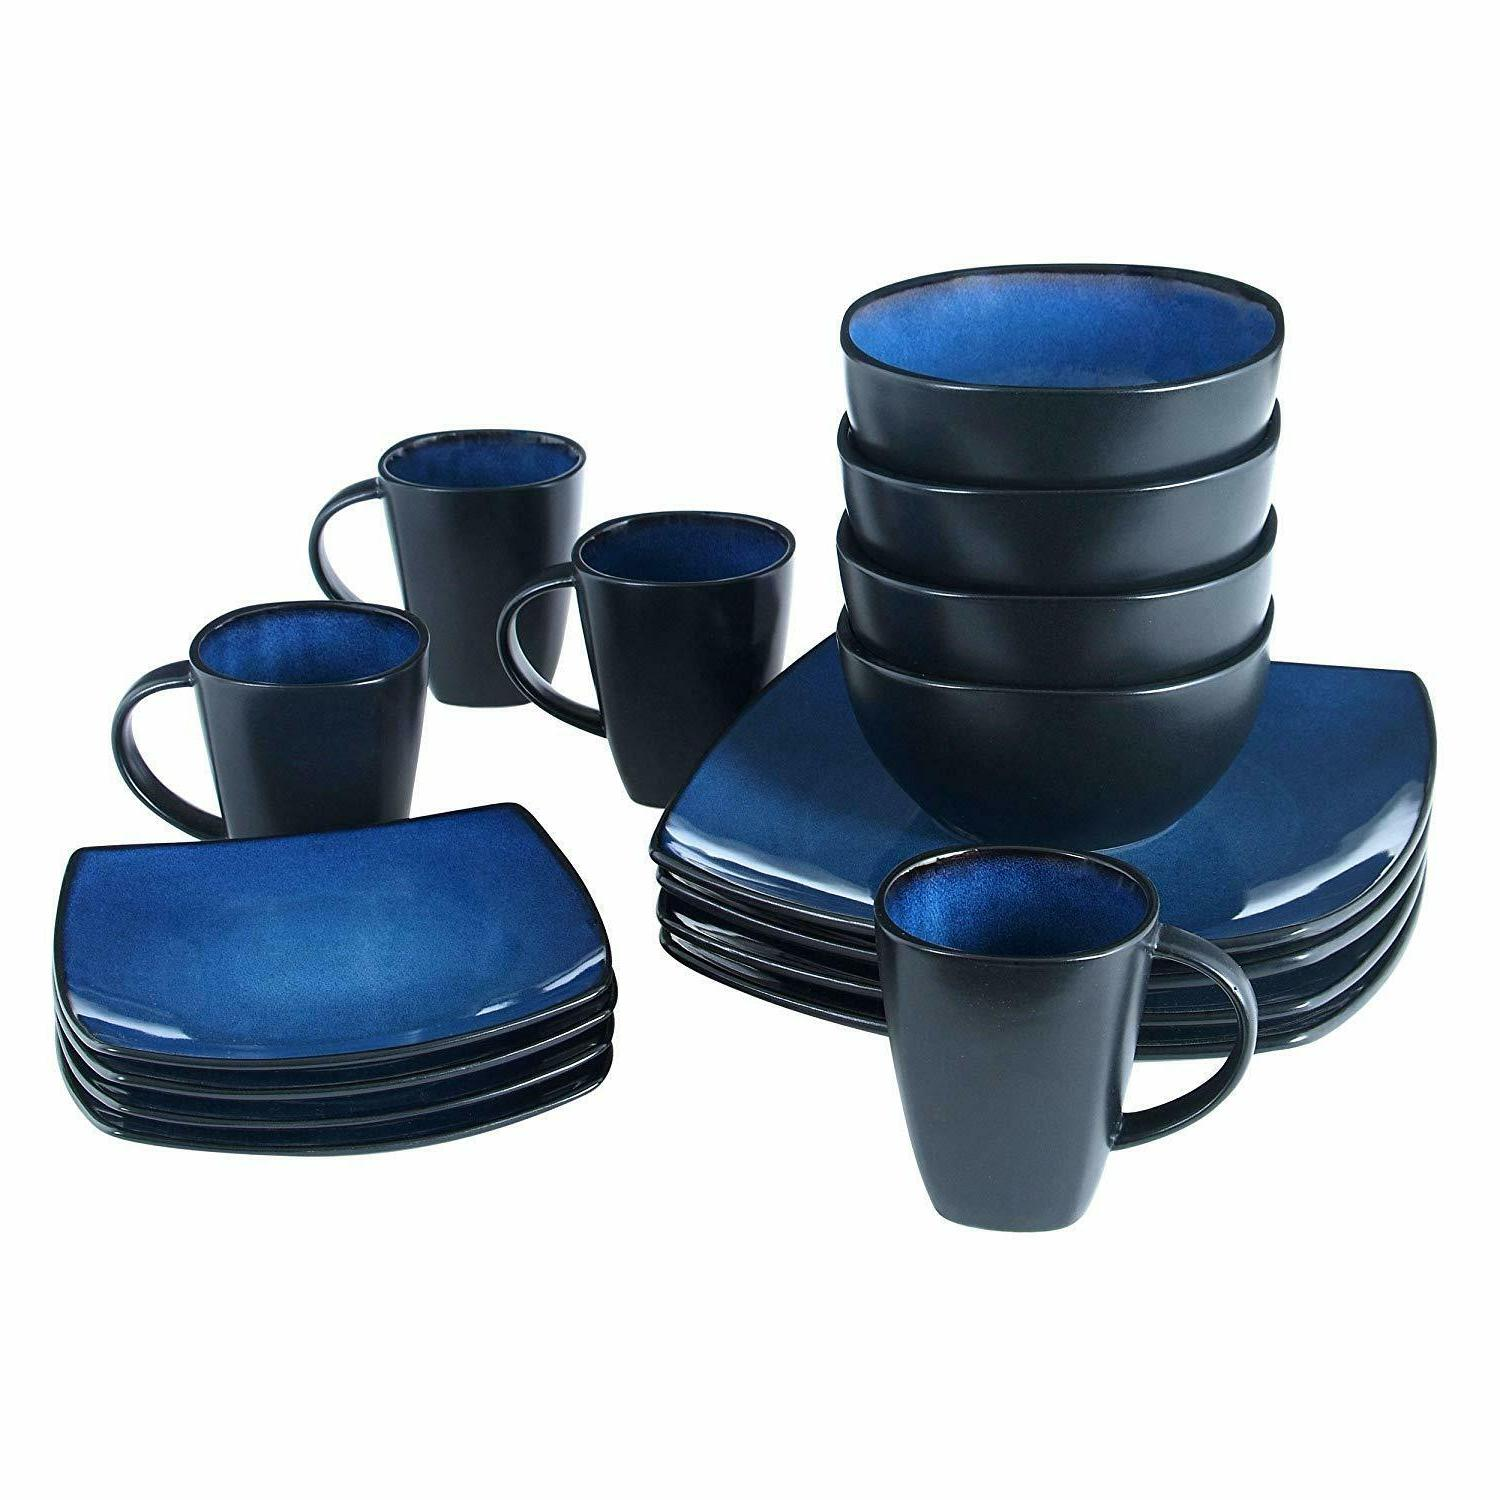 Dinnerware Set Dinner Plates Mugs Lounge